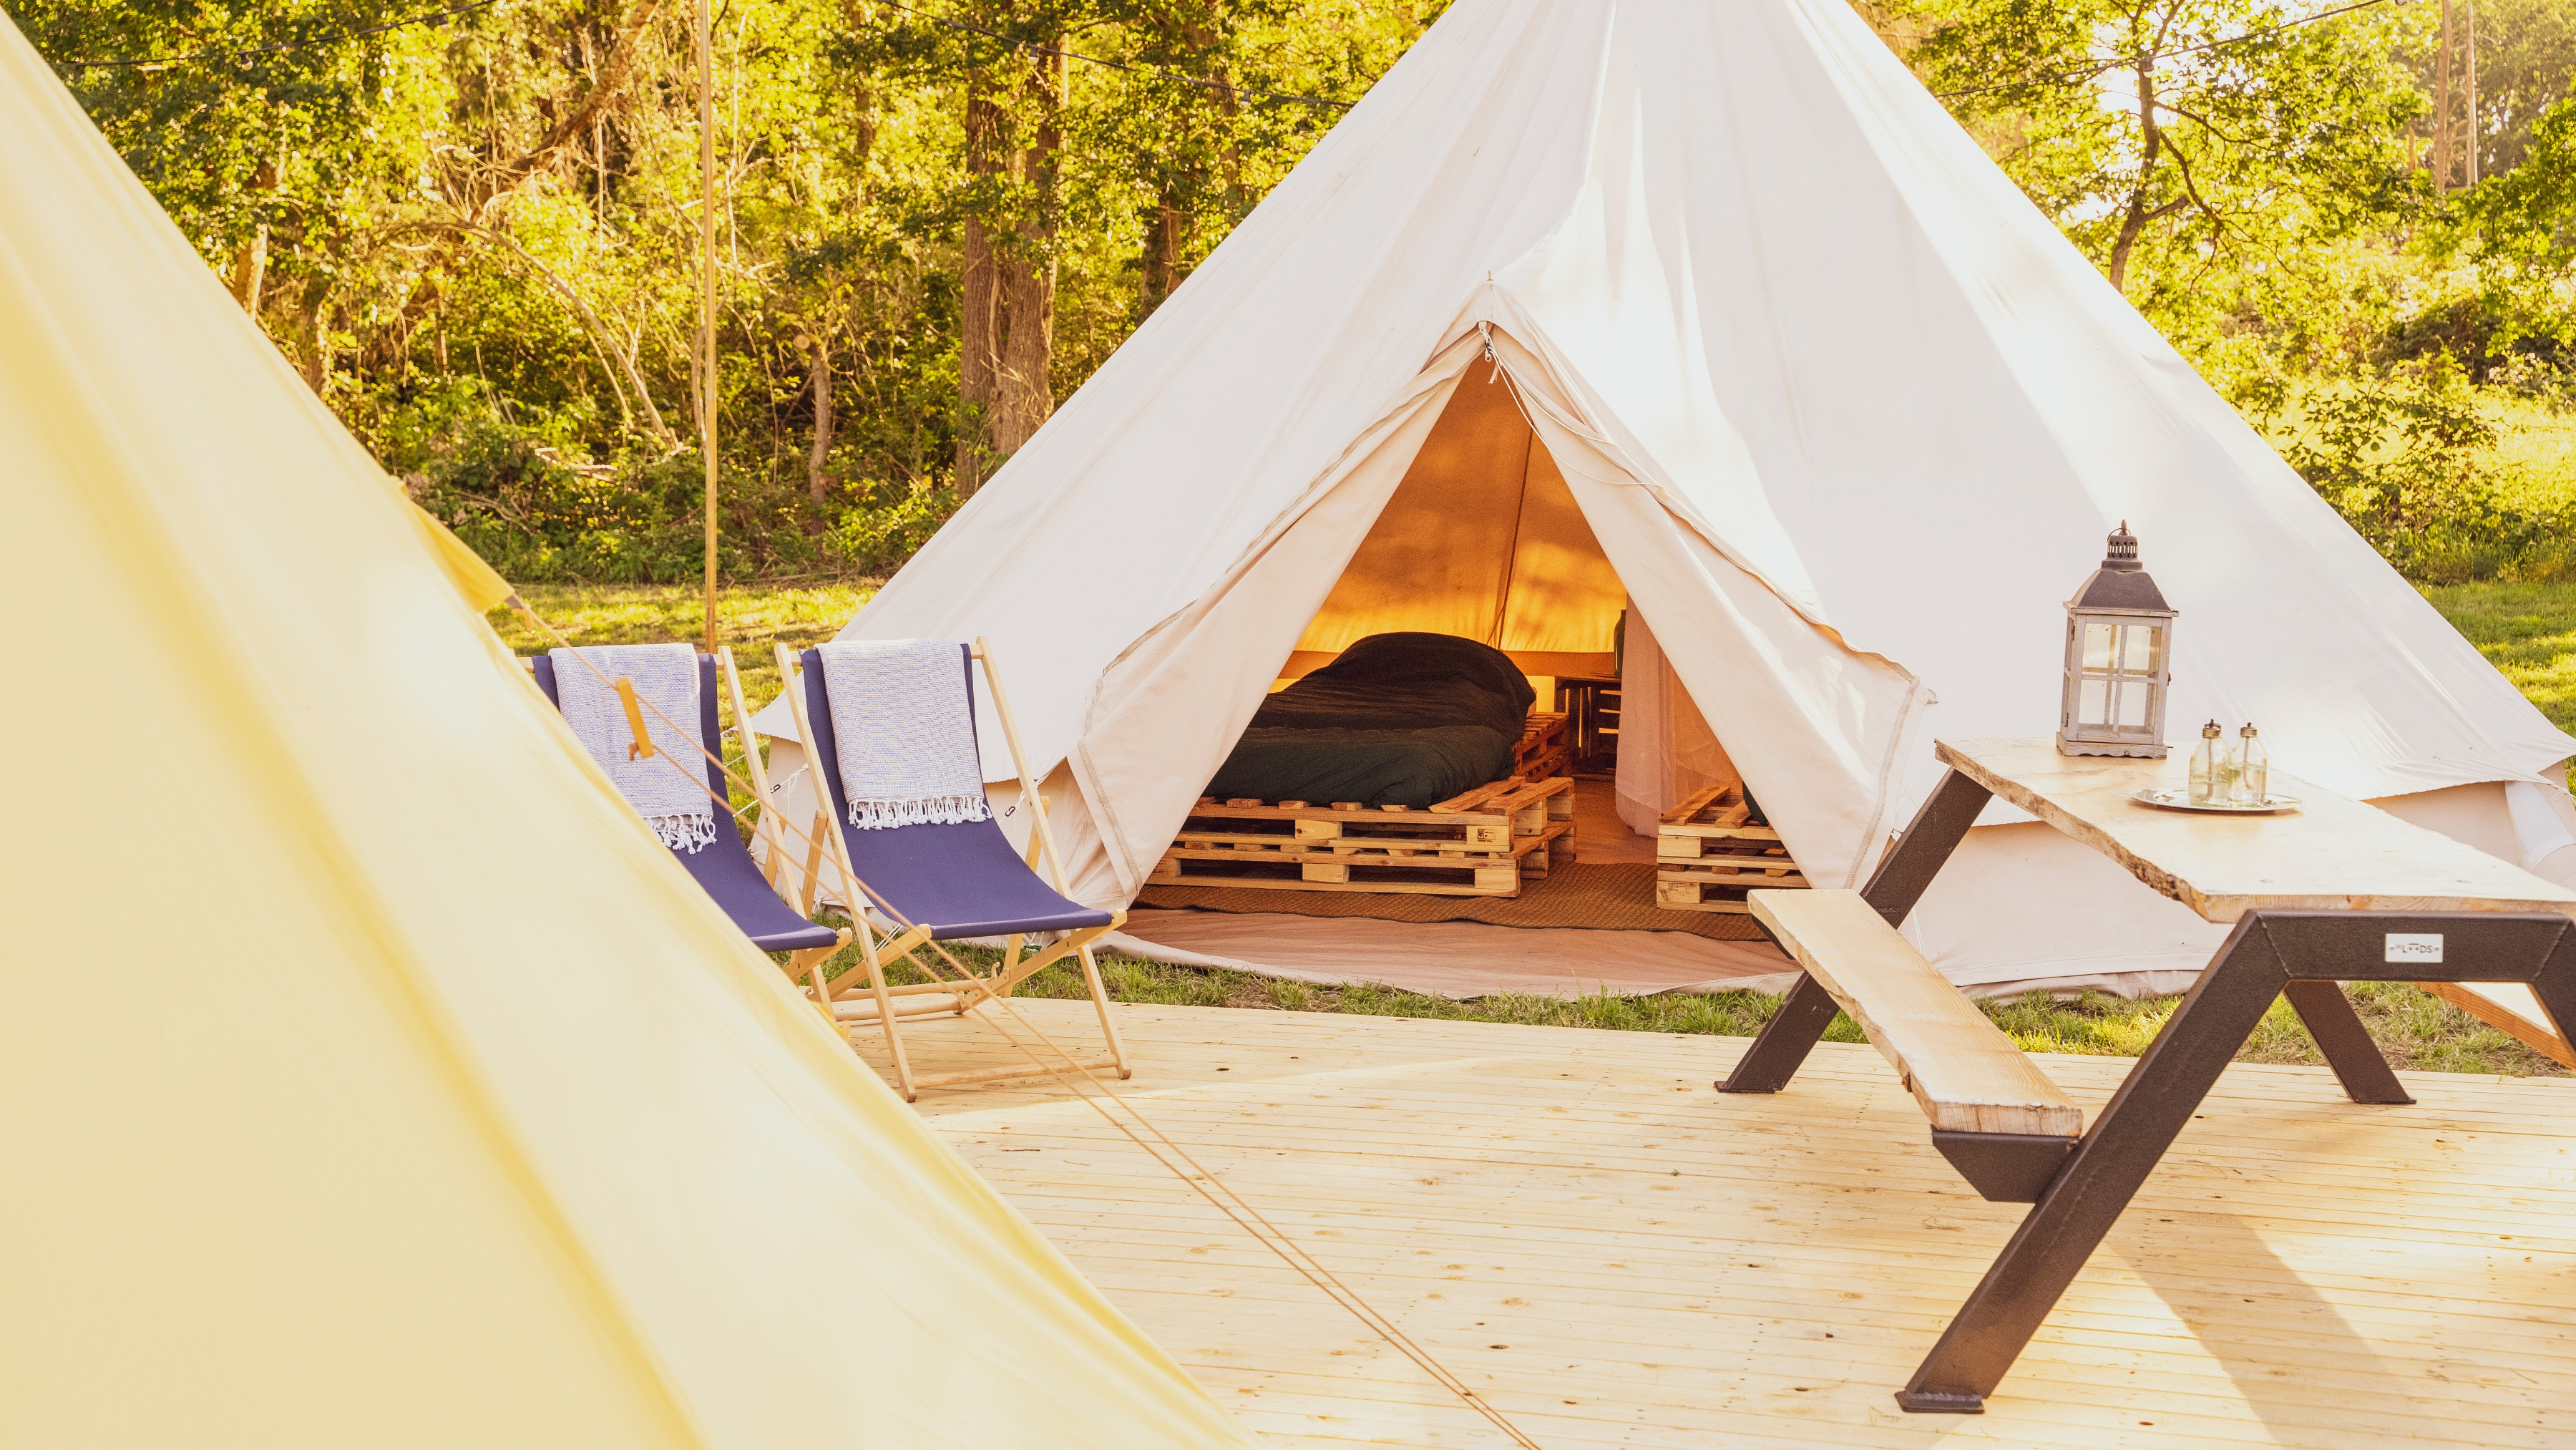 East Nomads pop-up glamping